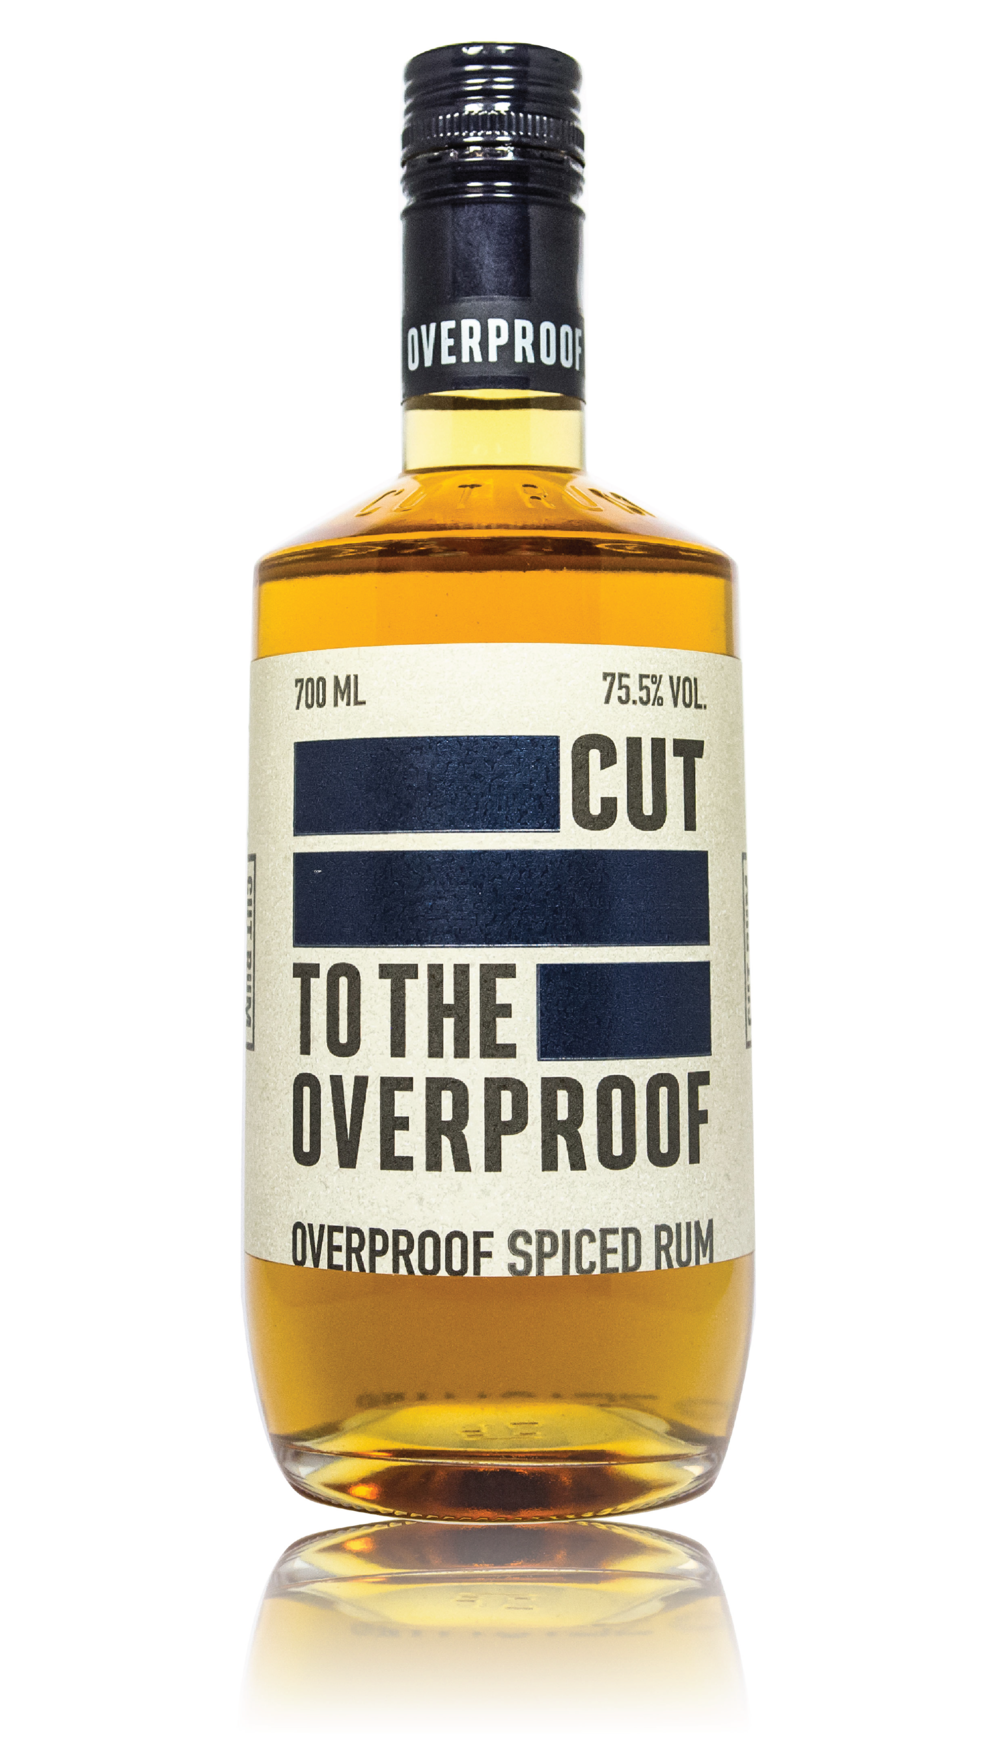 CUT OVERPROOF RUM - 151 PROOF 75.5% ABVOUR AMAZINGLY SMOOTH OVERPROOF SPICED RUM. INFUSED WITH ALL THE SAME GREAT SPICES BUT AT OVER 70% IT TAKES ON SO MANY NEW CHARACTERISTICS AND HAS A DEPTH OF FLAVOUR THAT WILL STAND UP TO ANY INGREDIENTON THE NOSE ████ WAFFLES ██████████  PANCAKES ██████████  MOTOR OILON THE TASTE VANILLA ██████  ██████ BUTTERSCOTCH ███████  COCONUT OIL ███████ CINNAMON